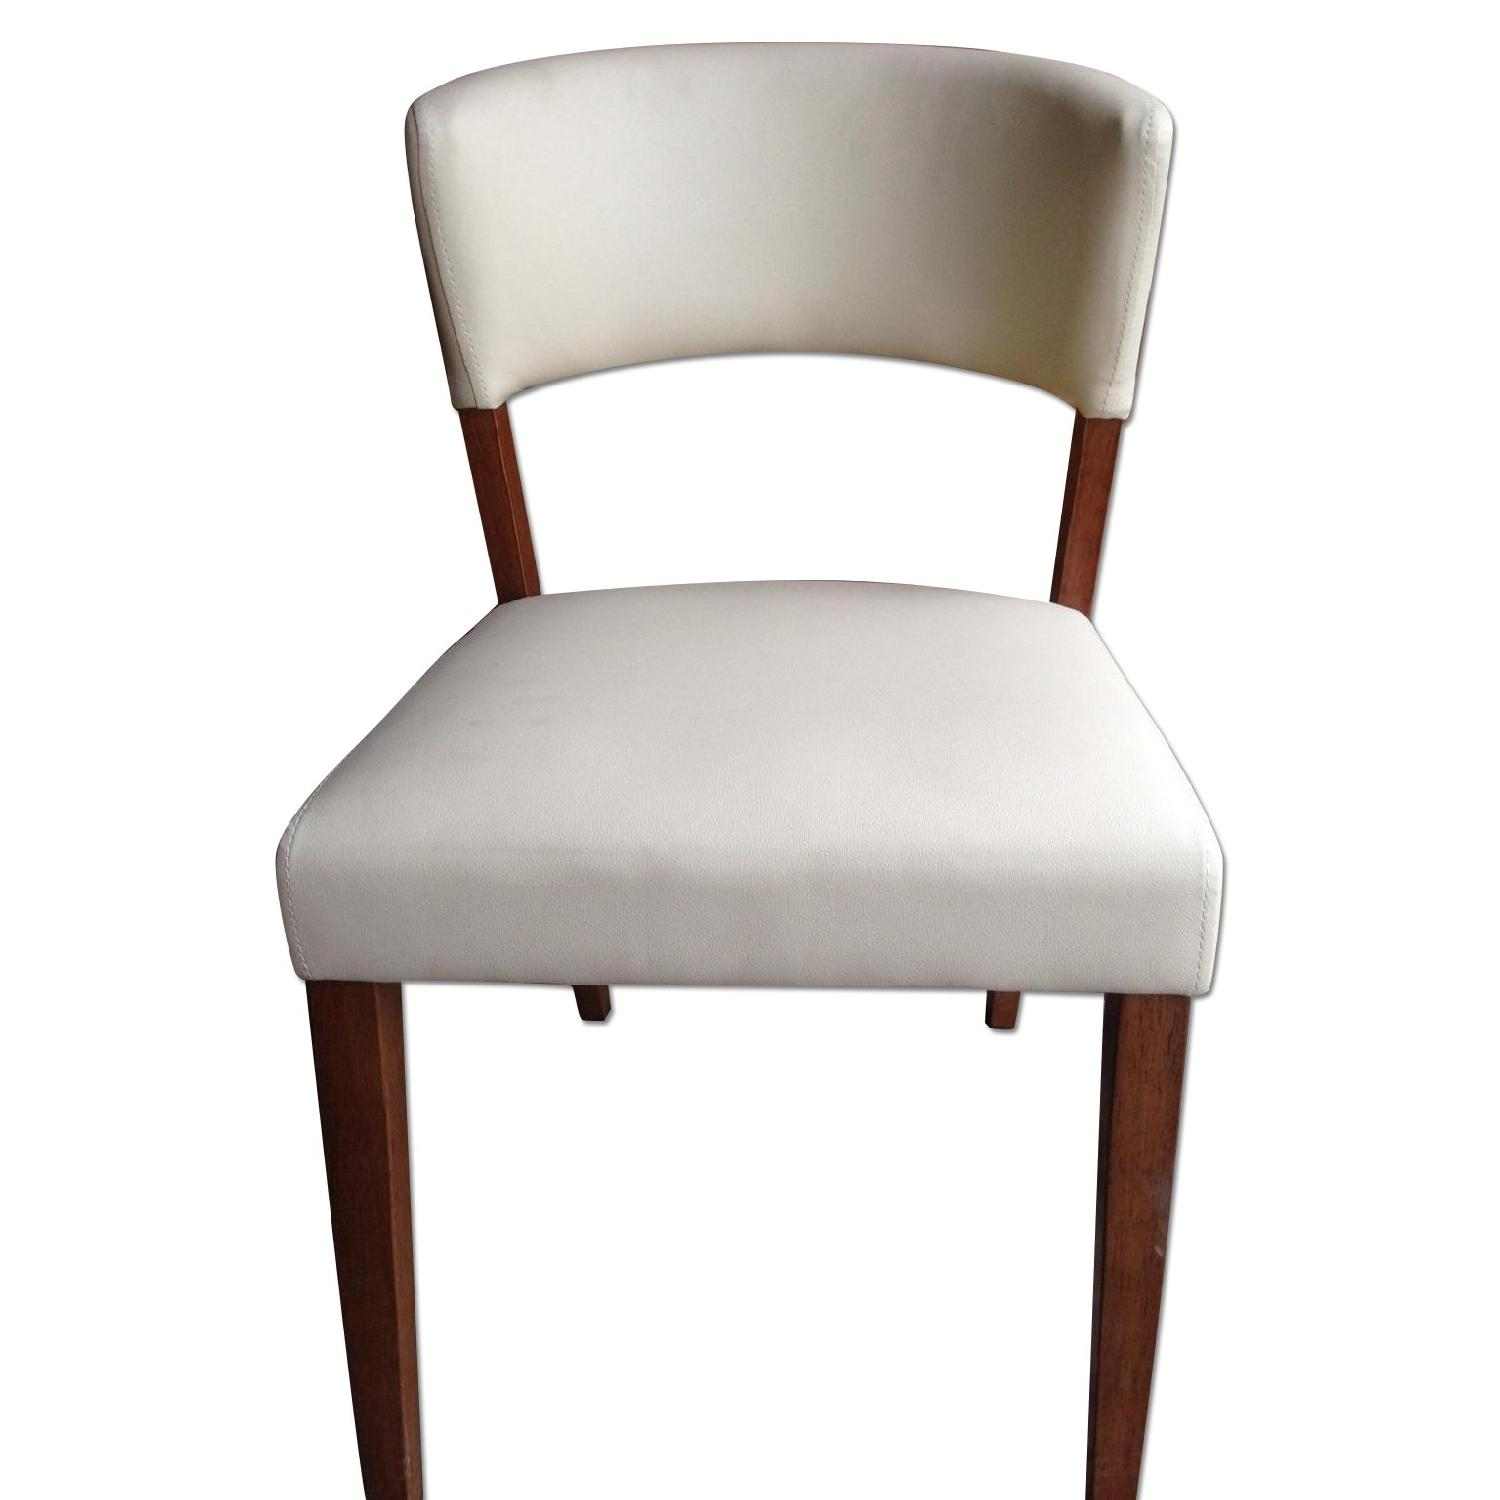 cream upholstered dining chairs pictures of in bathrooms mid century style chair w walnut color frame aptdeco